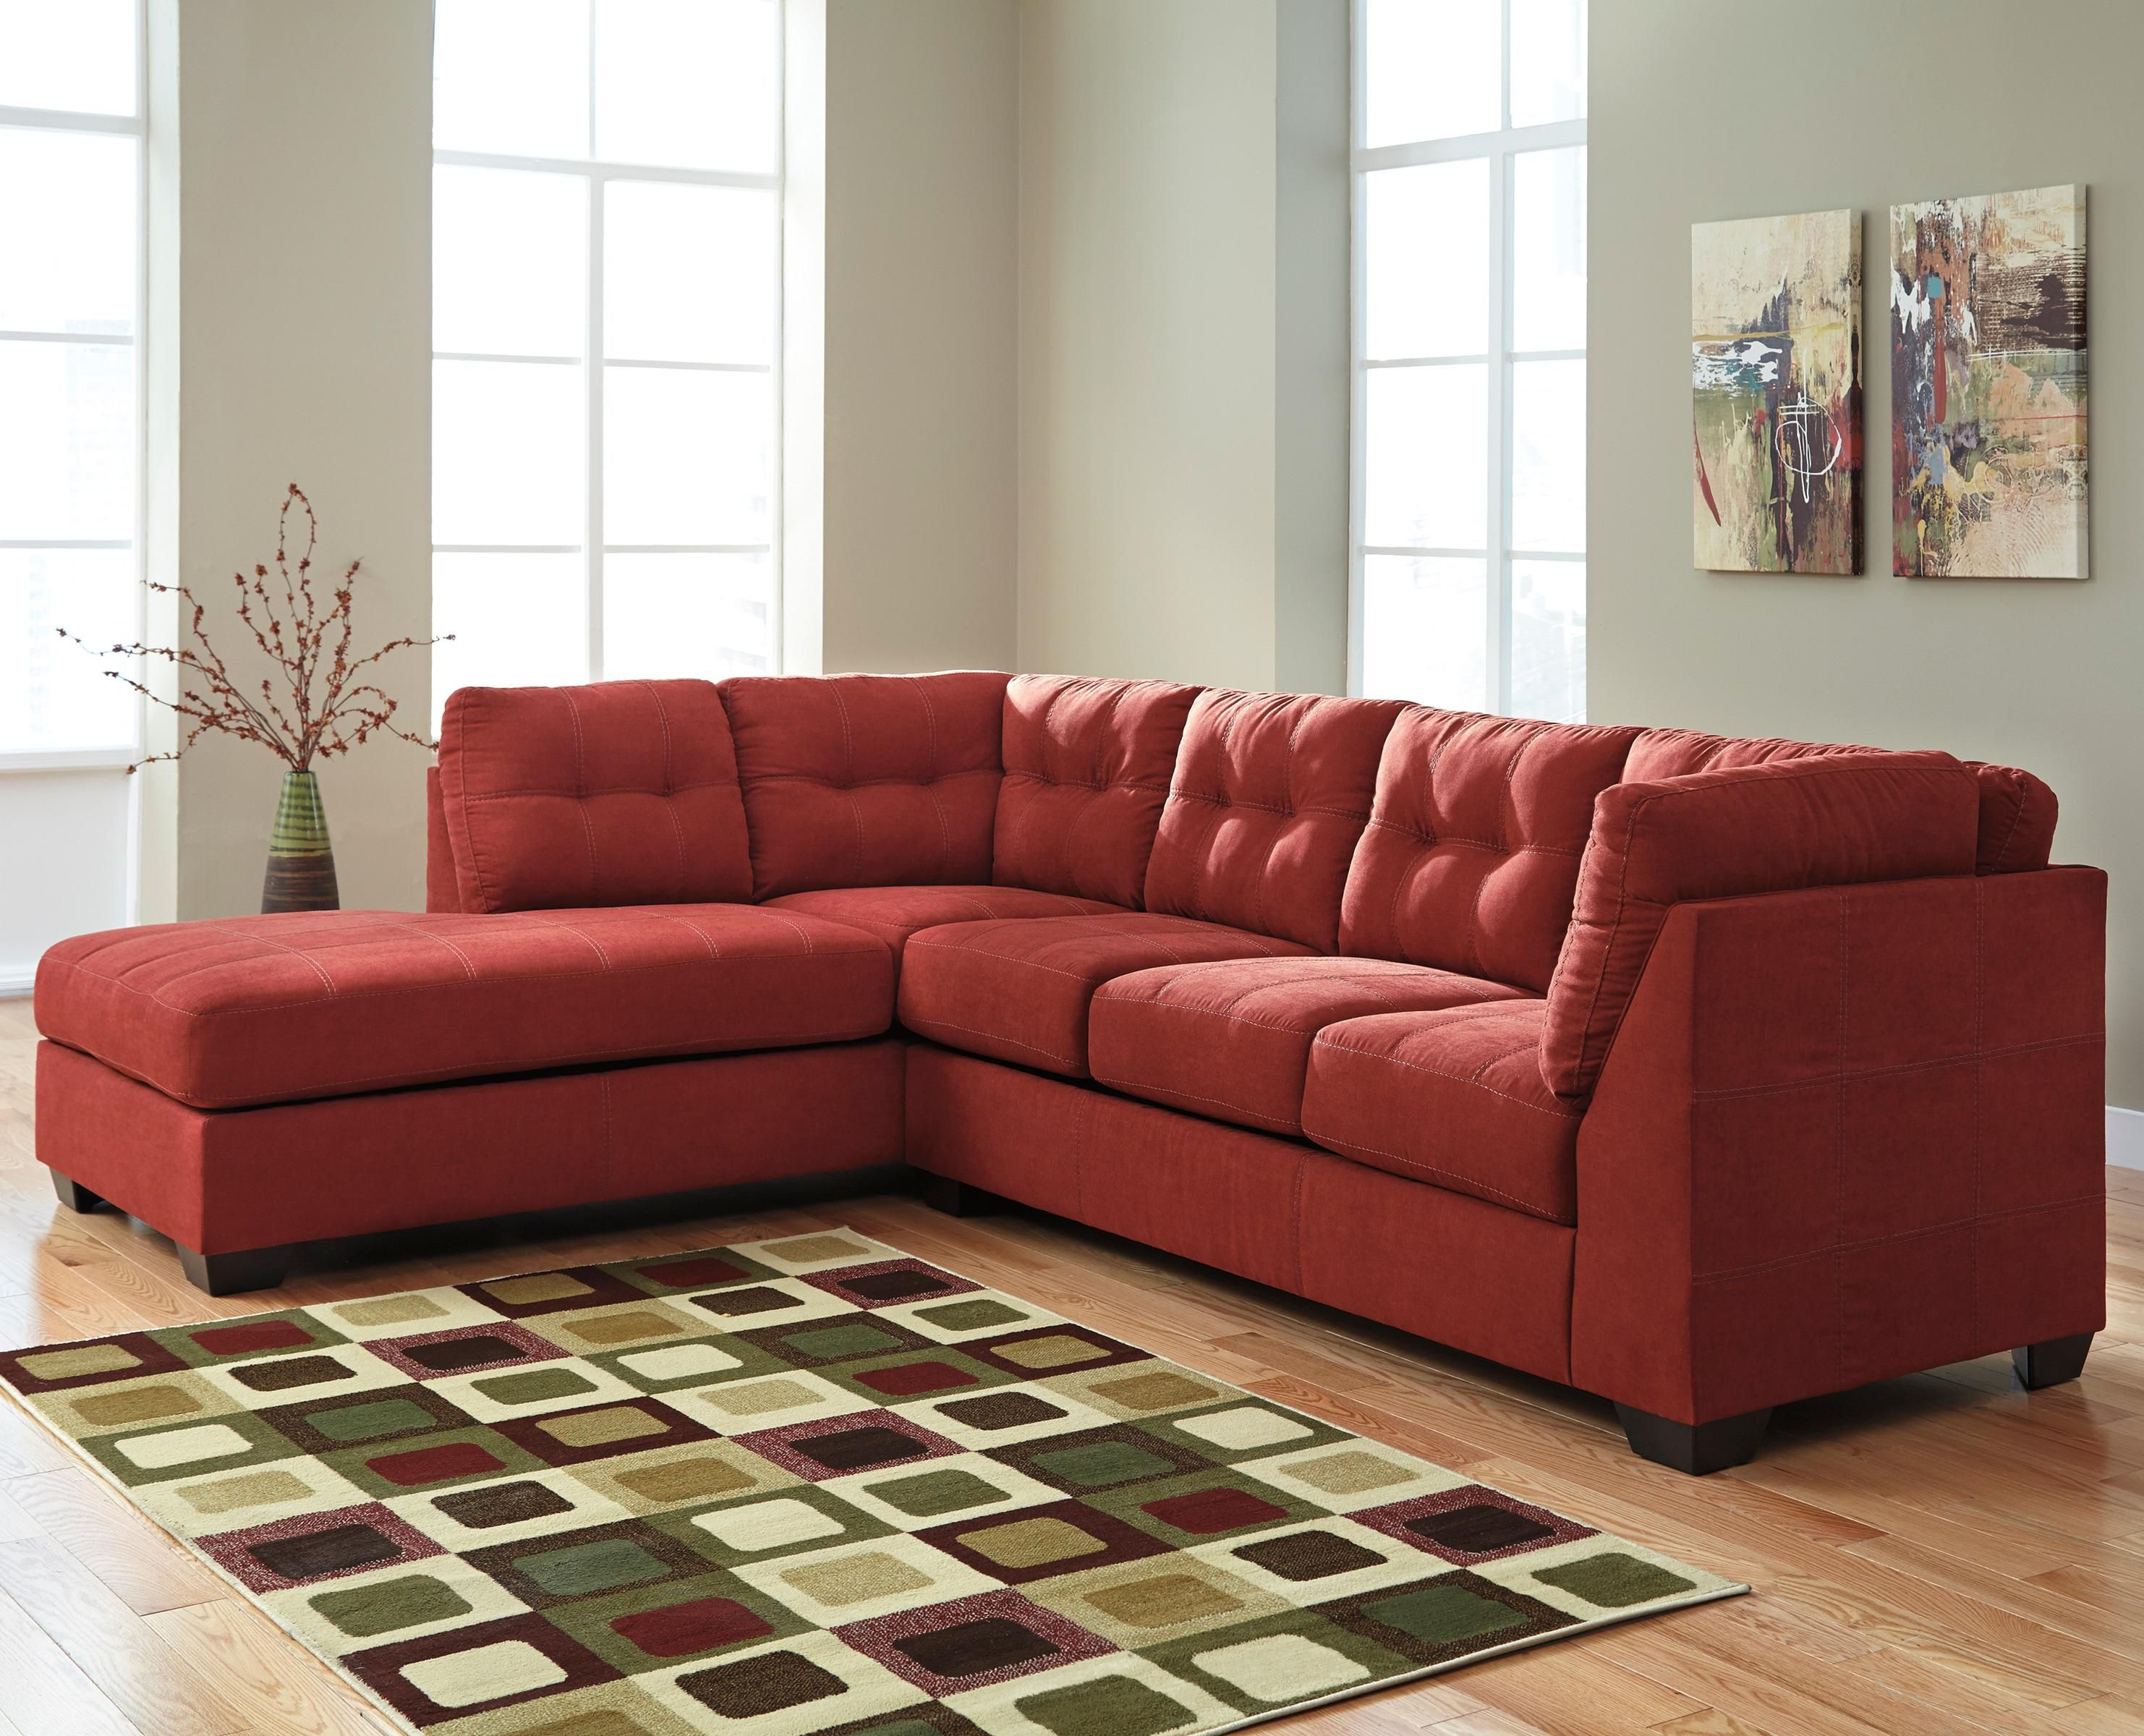 Maier Sienna 2 Piece Sectional With